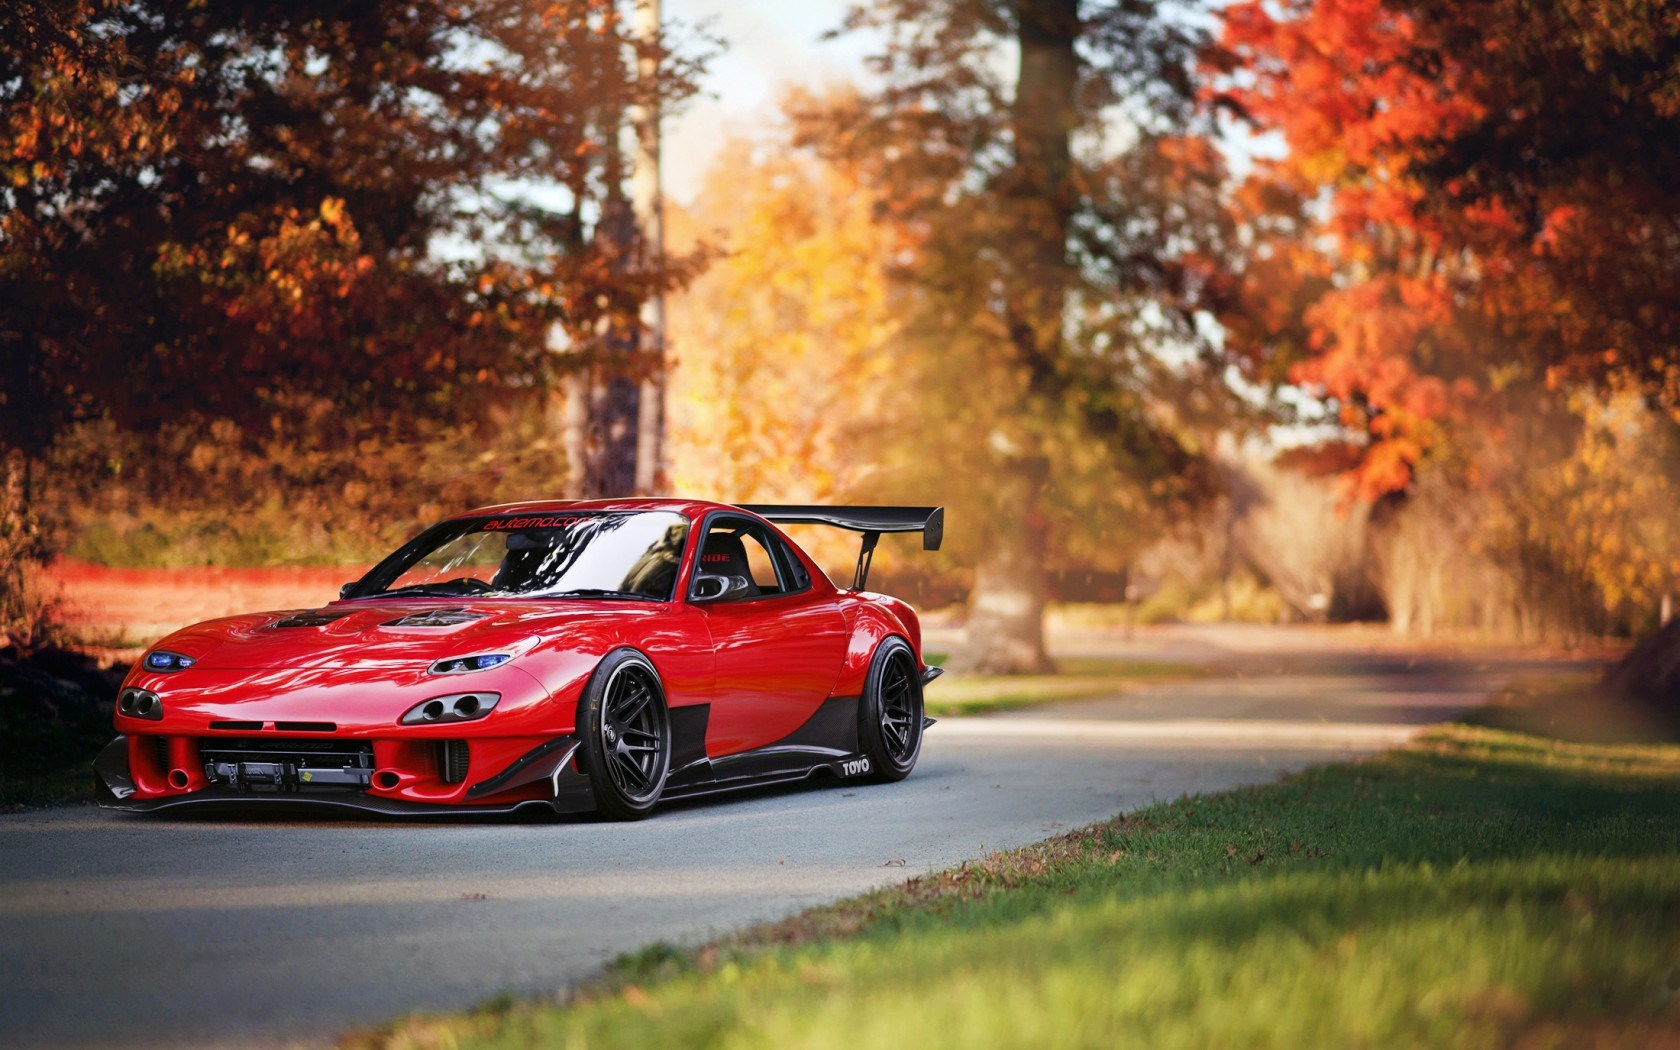 Mazda RX-7 Car Red Tuning